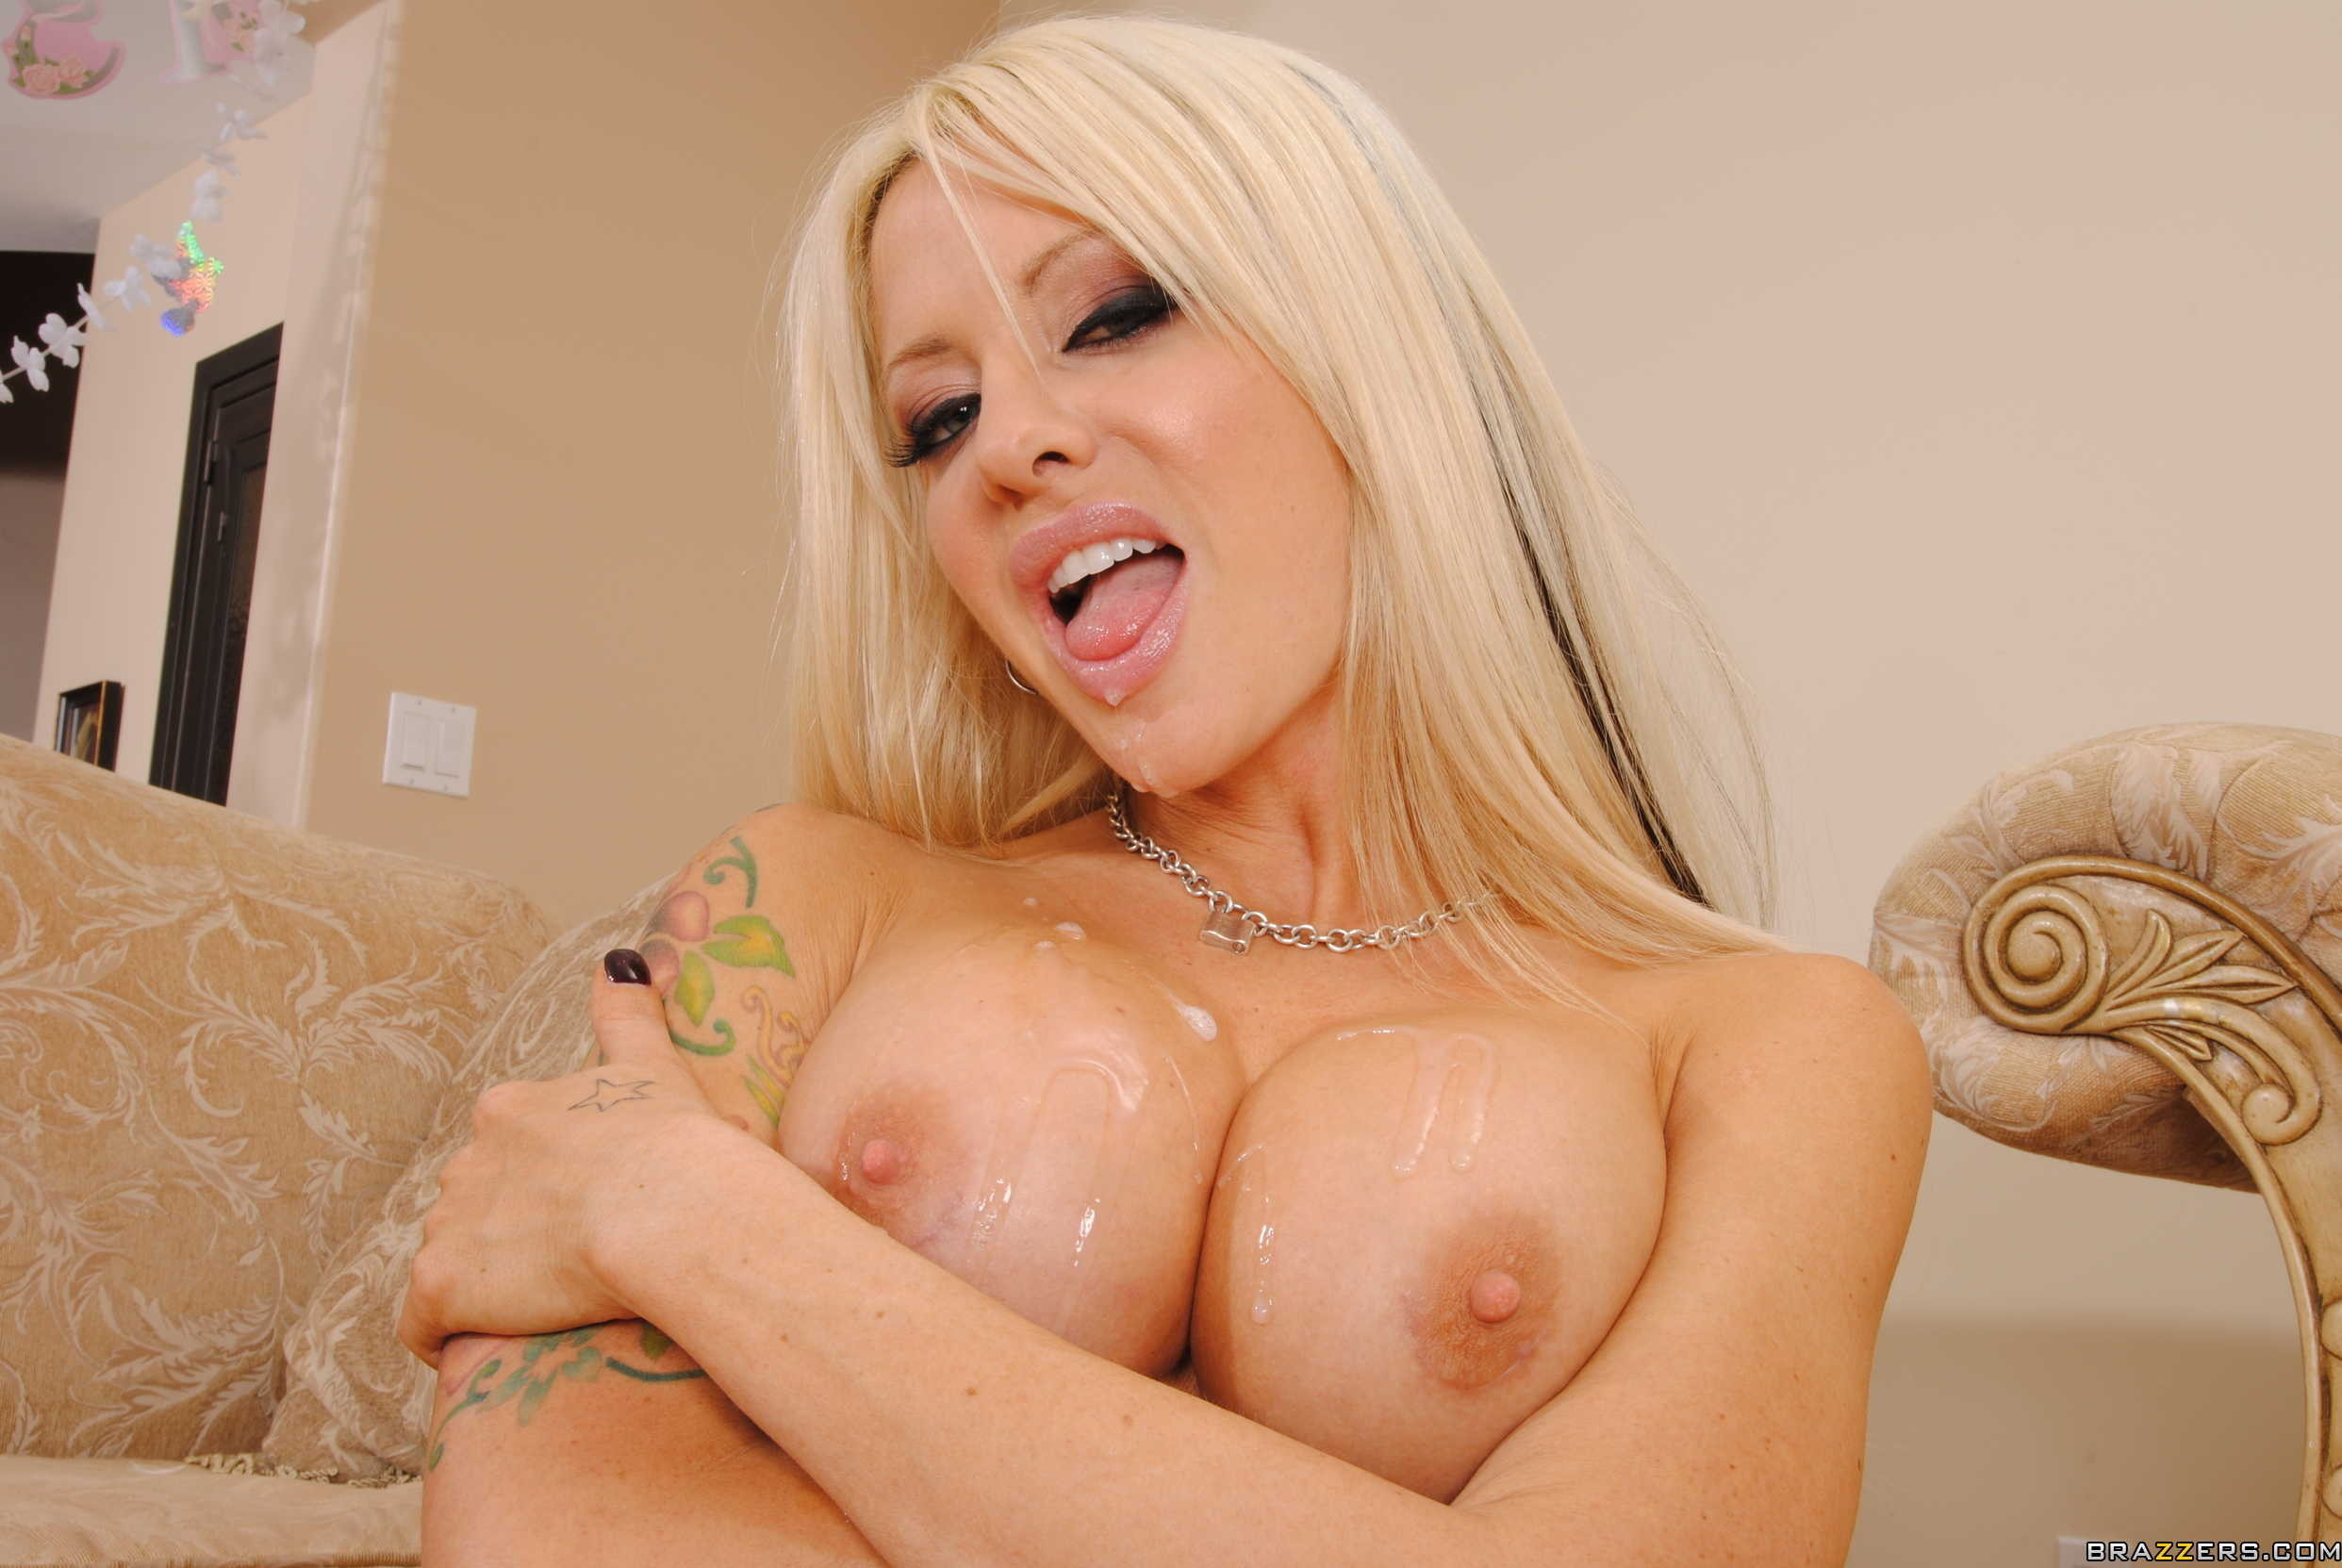 Mature ex wife naked pics